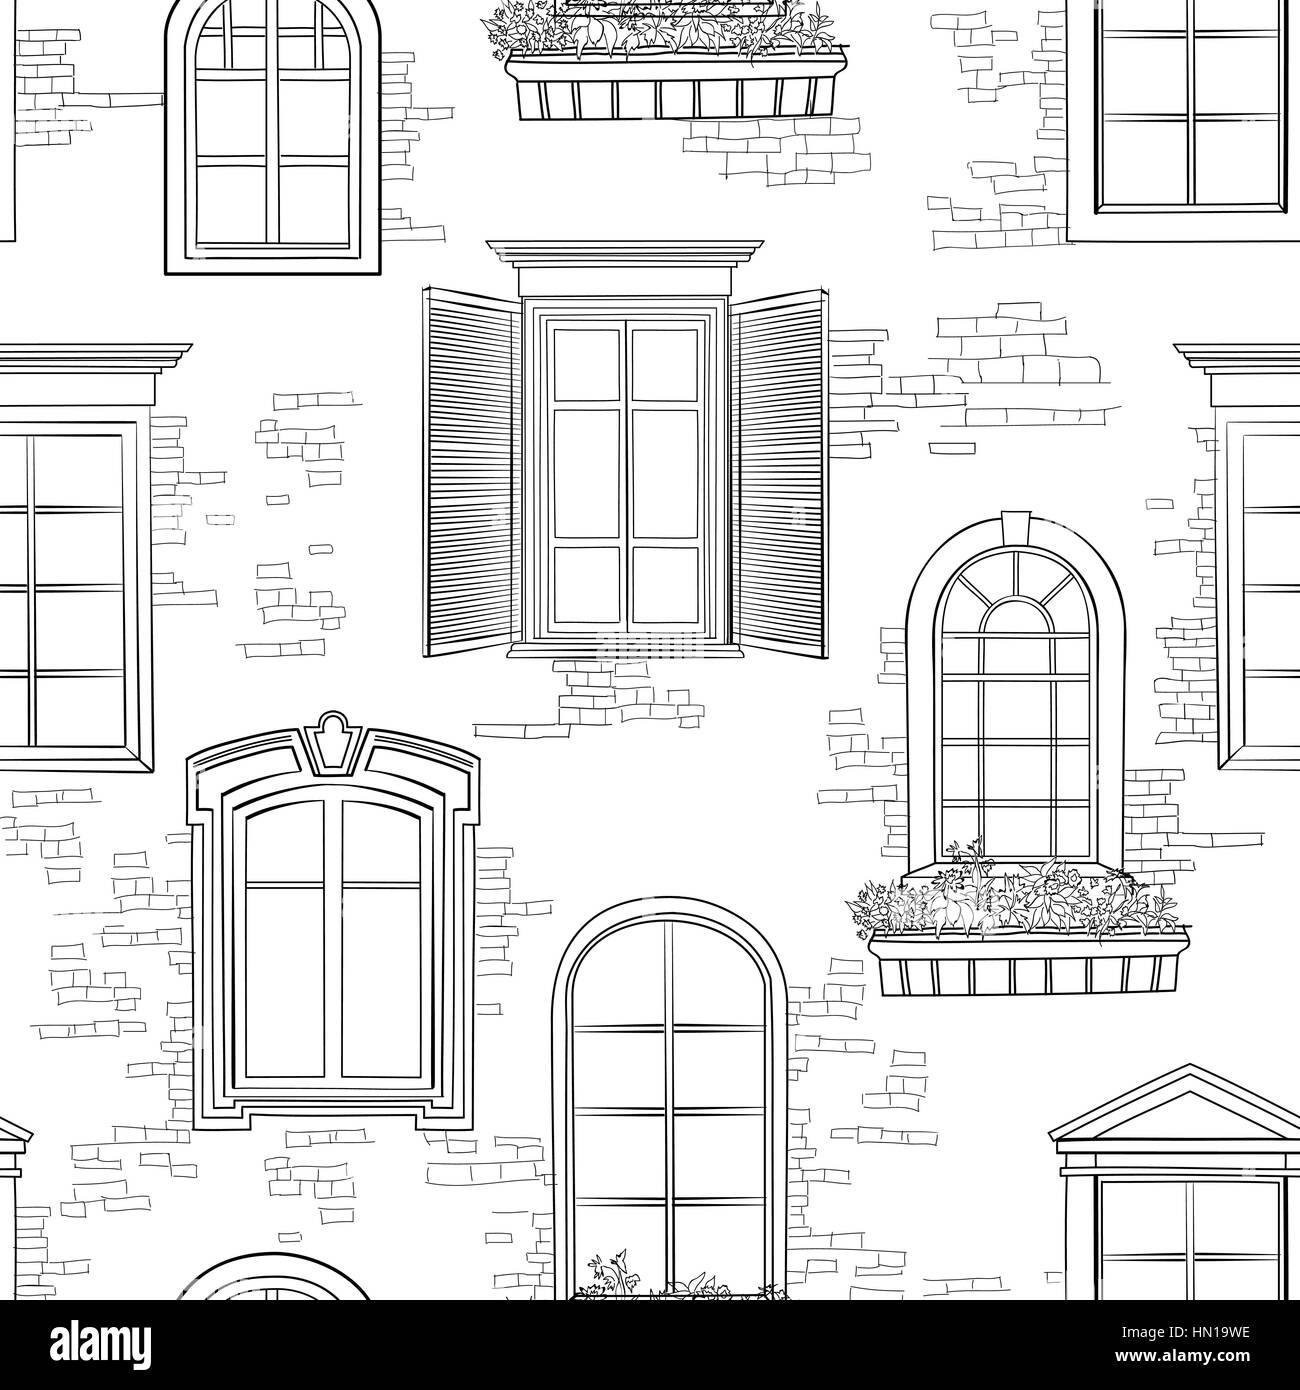 window pattern different architectural style of windows doodle sketch HN19WE window pattern different architectural style of windows doodle